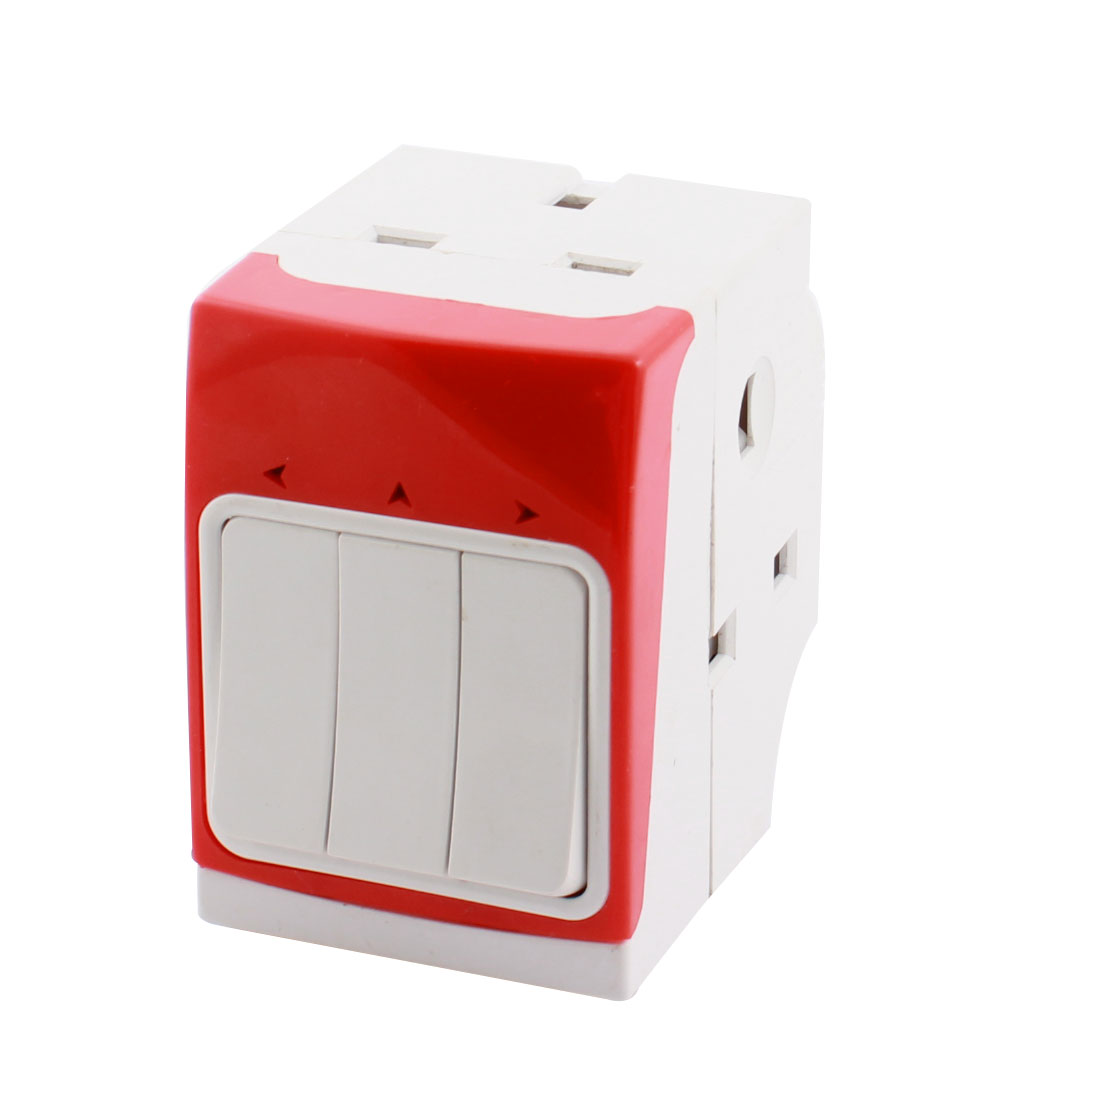 AC 250V 13A UK Plug to 3 UK Socket Switch Control Power Adapter